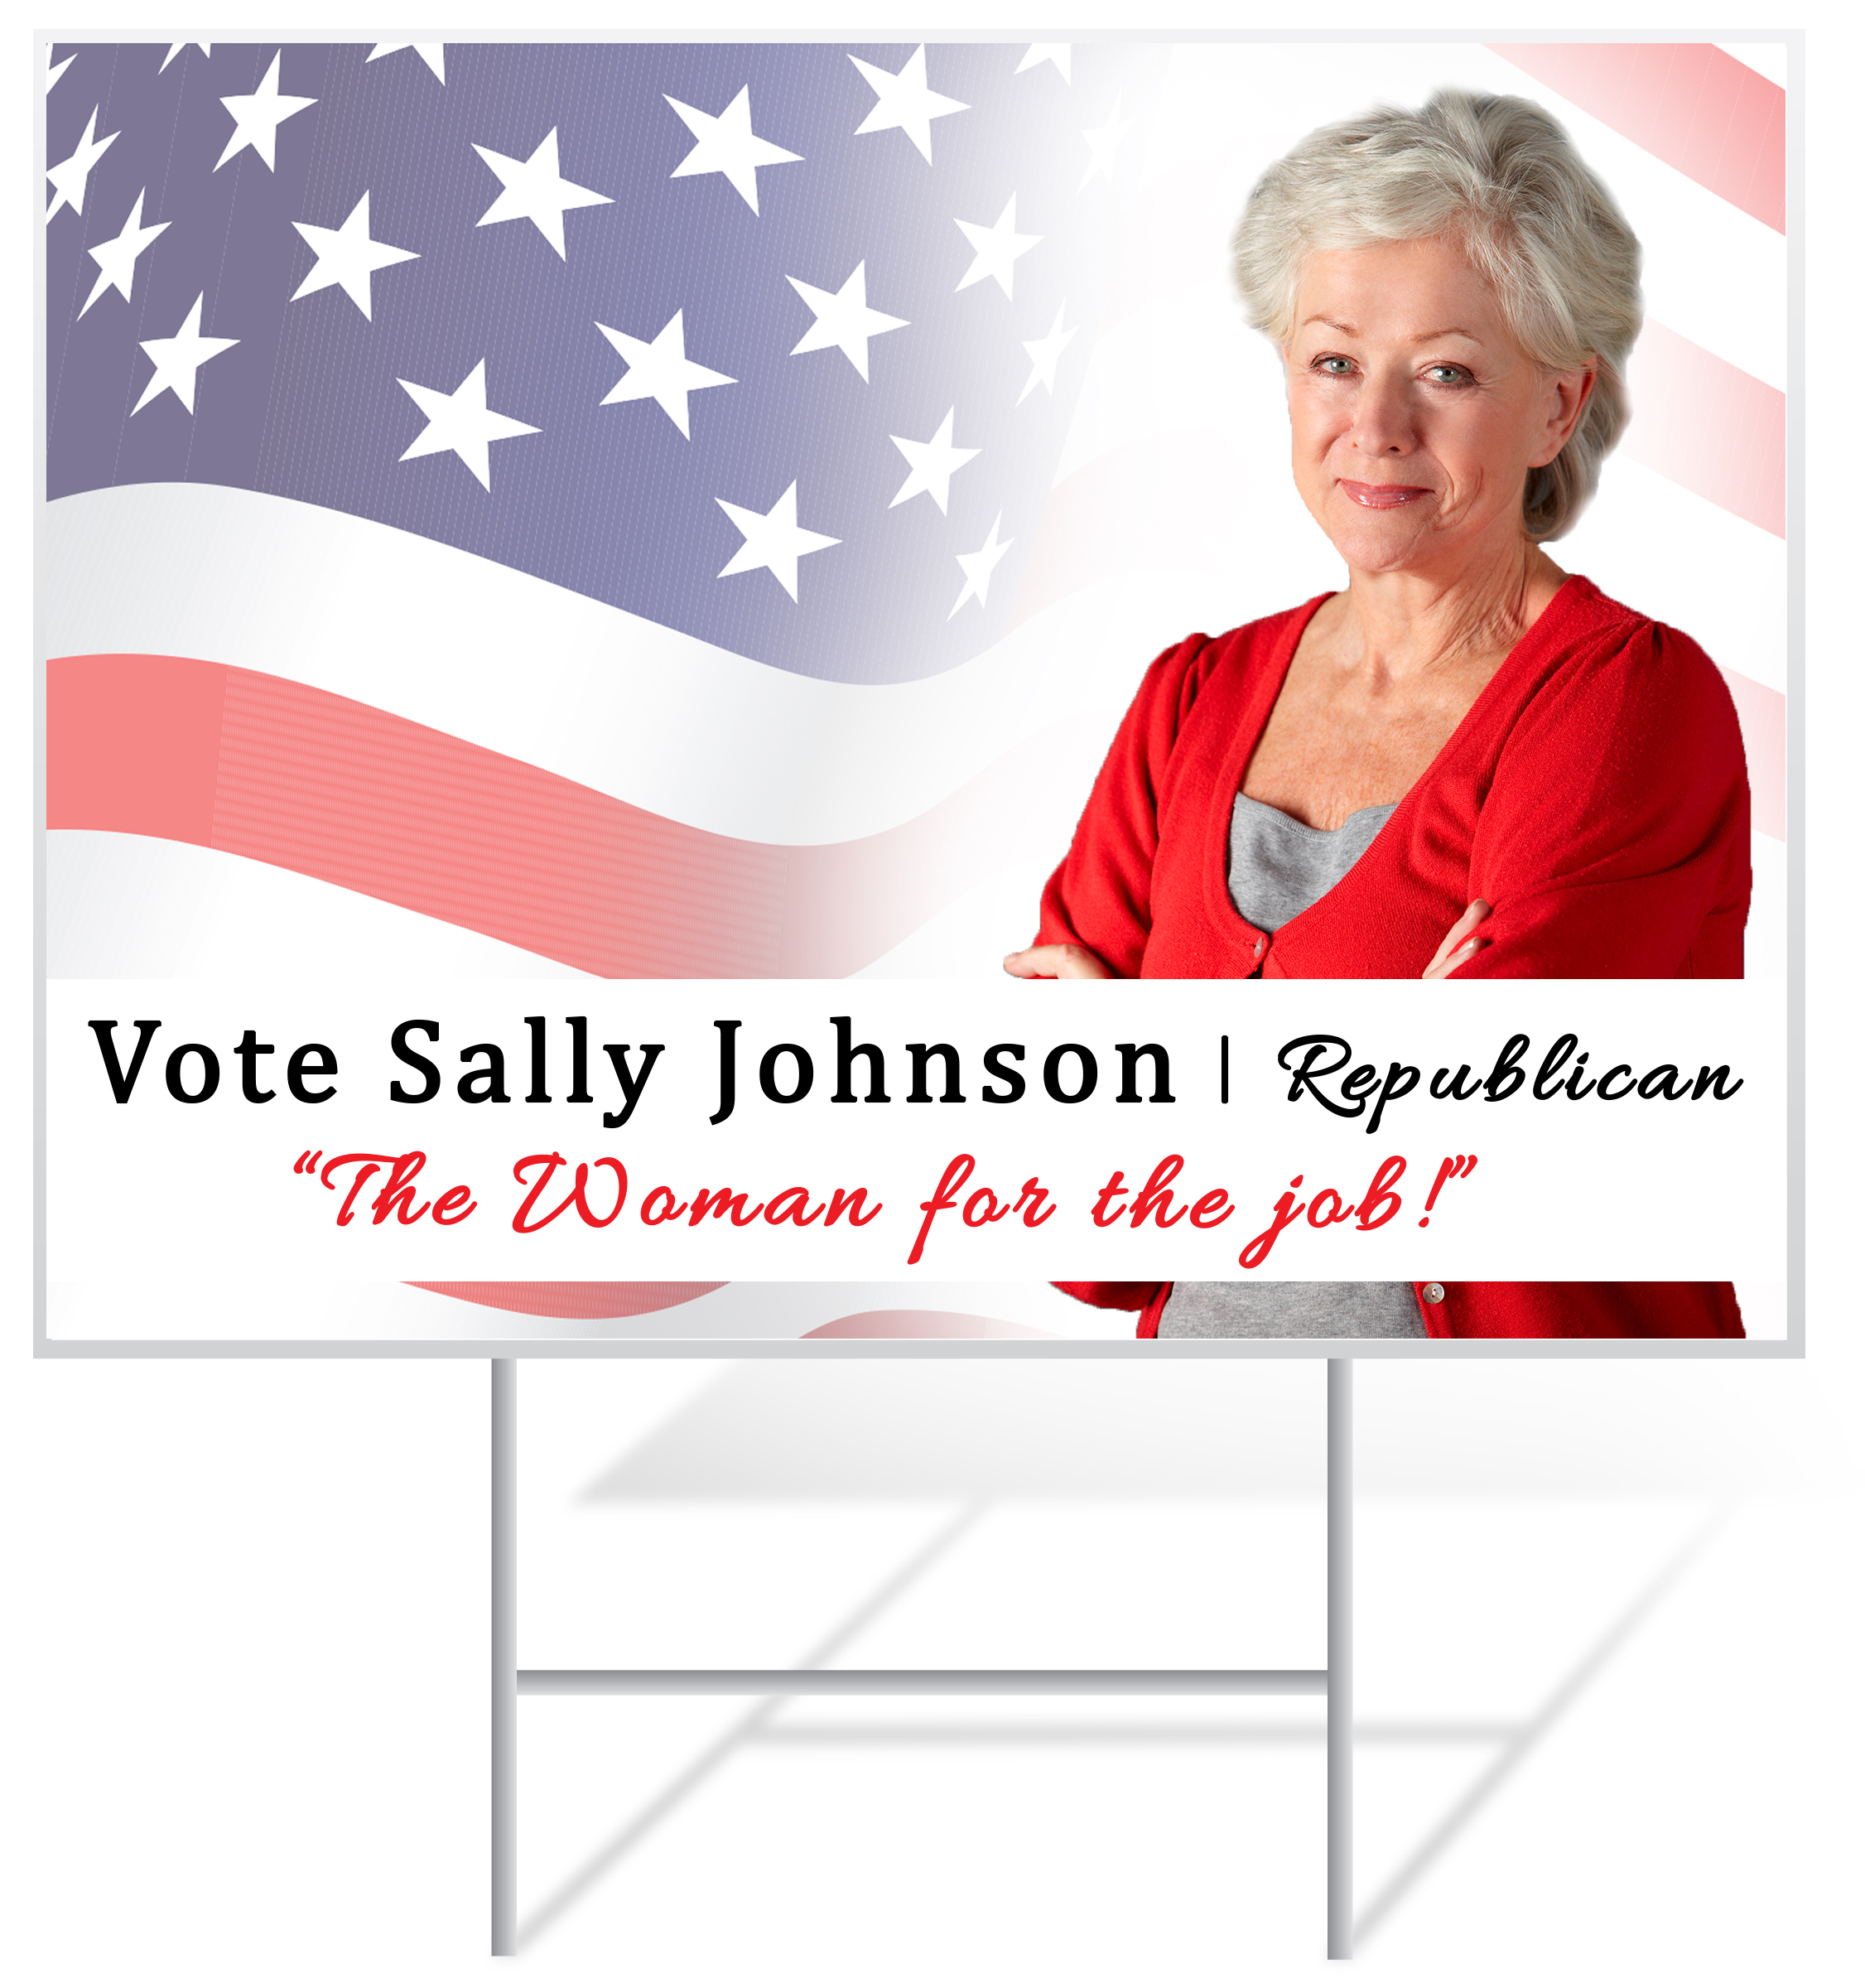 Republican Lawn Sign Example | LawnSigns.com